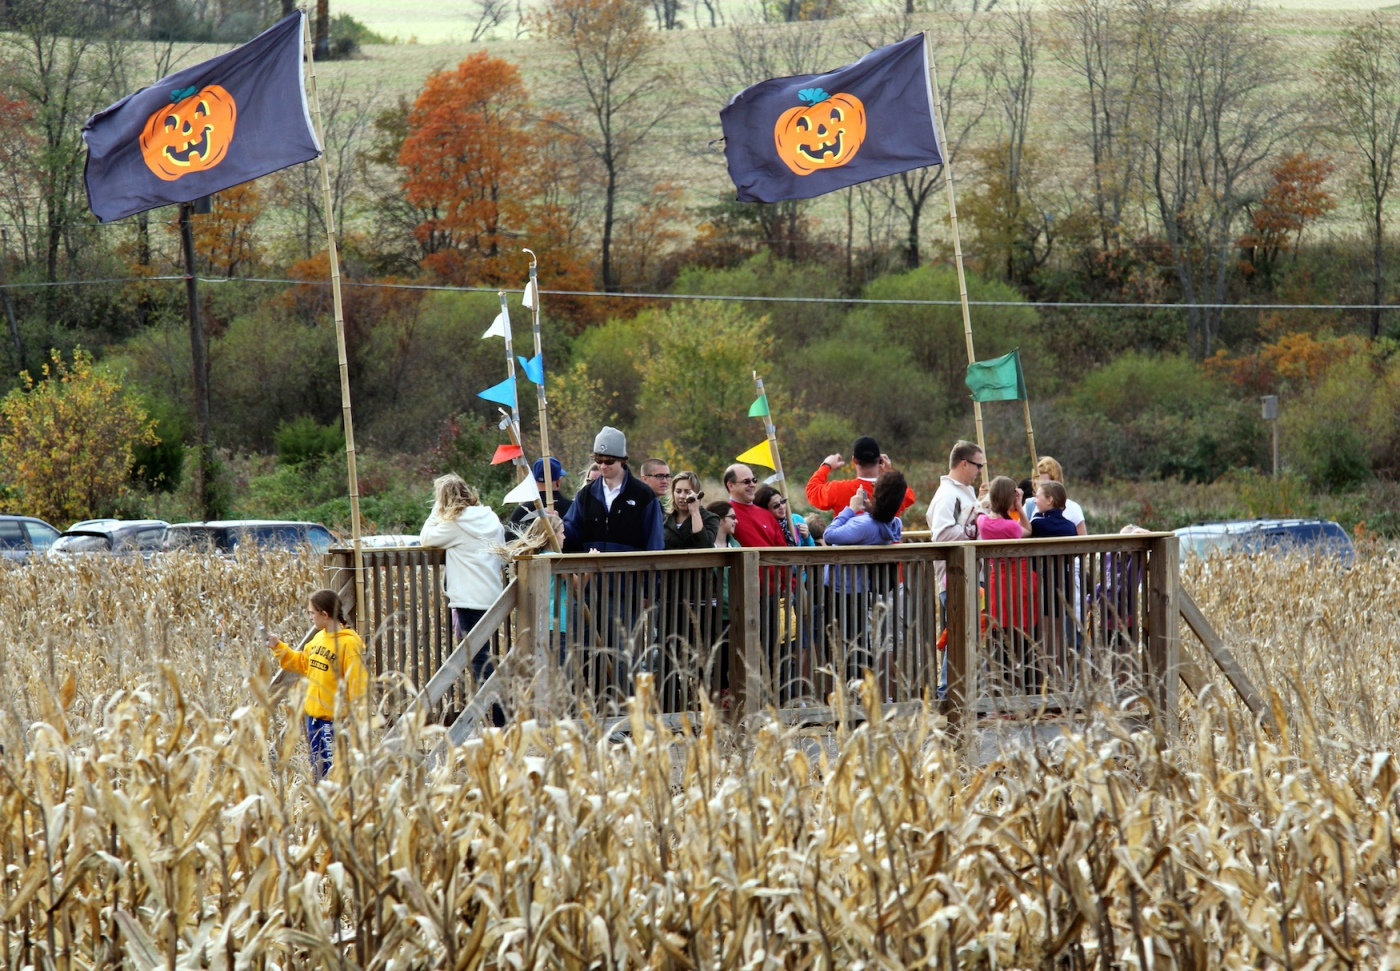 Corn Maze in the Plains - The Plains, Virginia